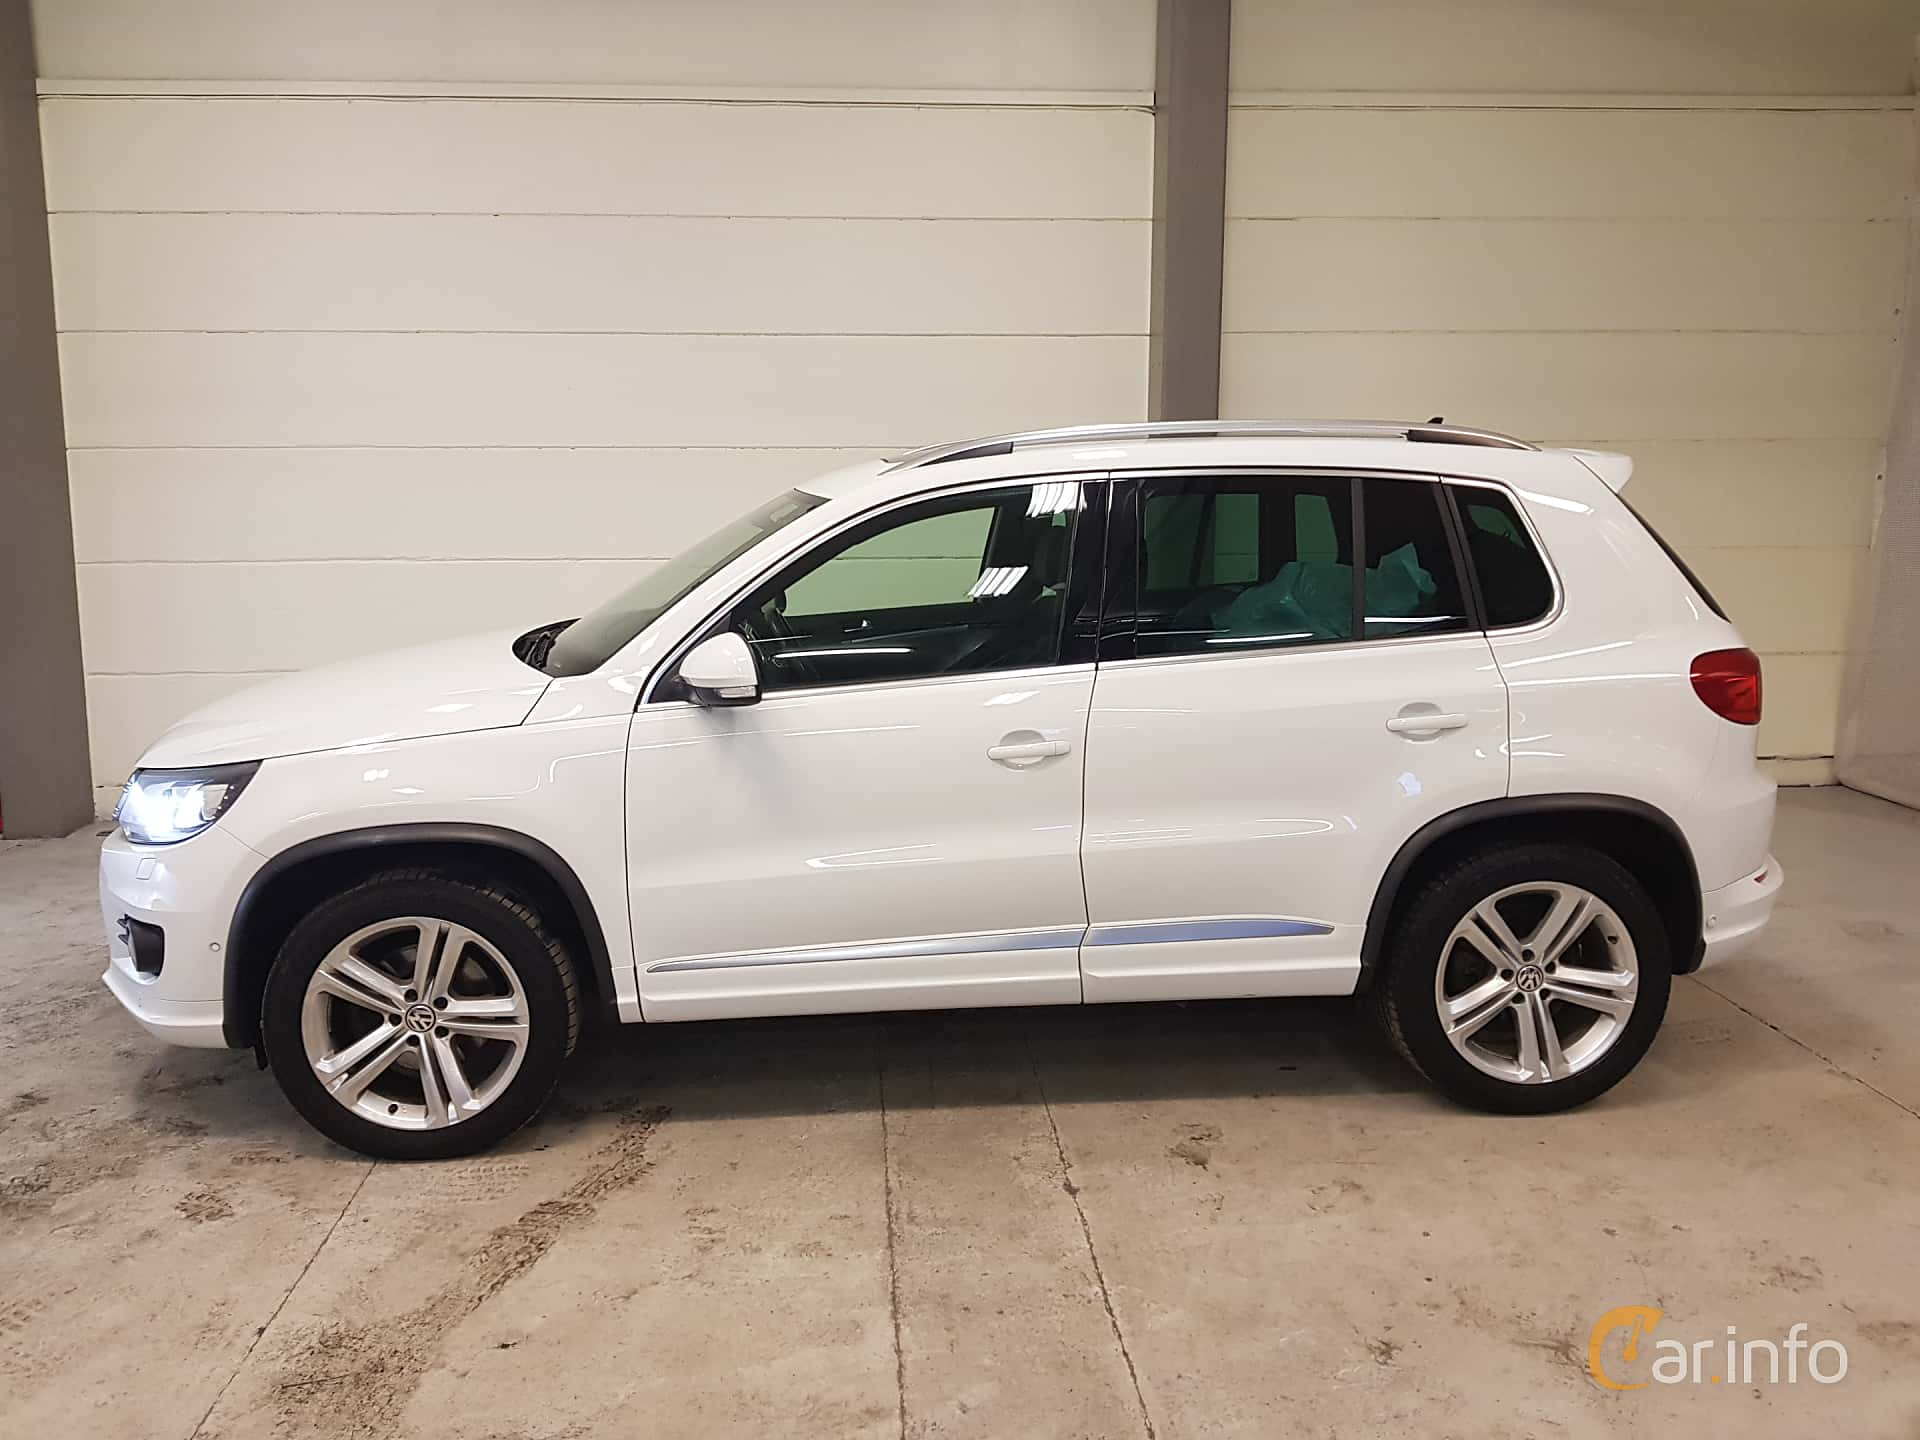 Volkswagen Tiguan 2.0 TDI 4Motion DSG Sequential, 184hp, 2016